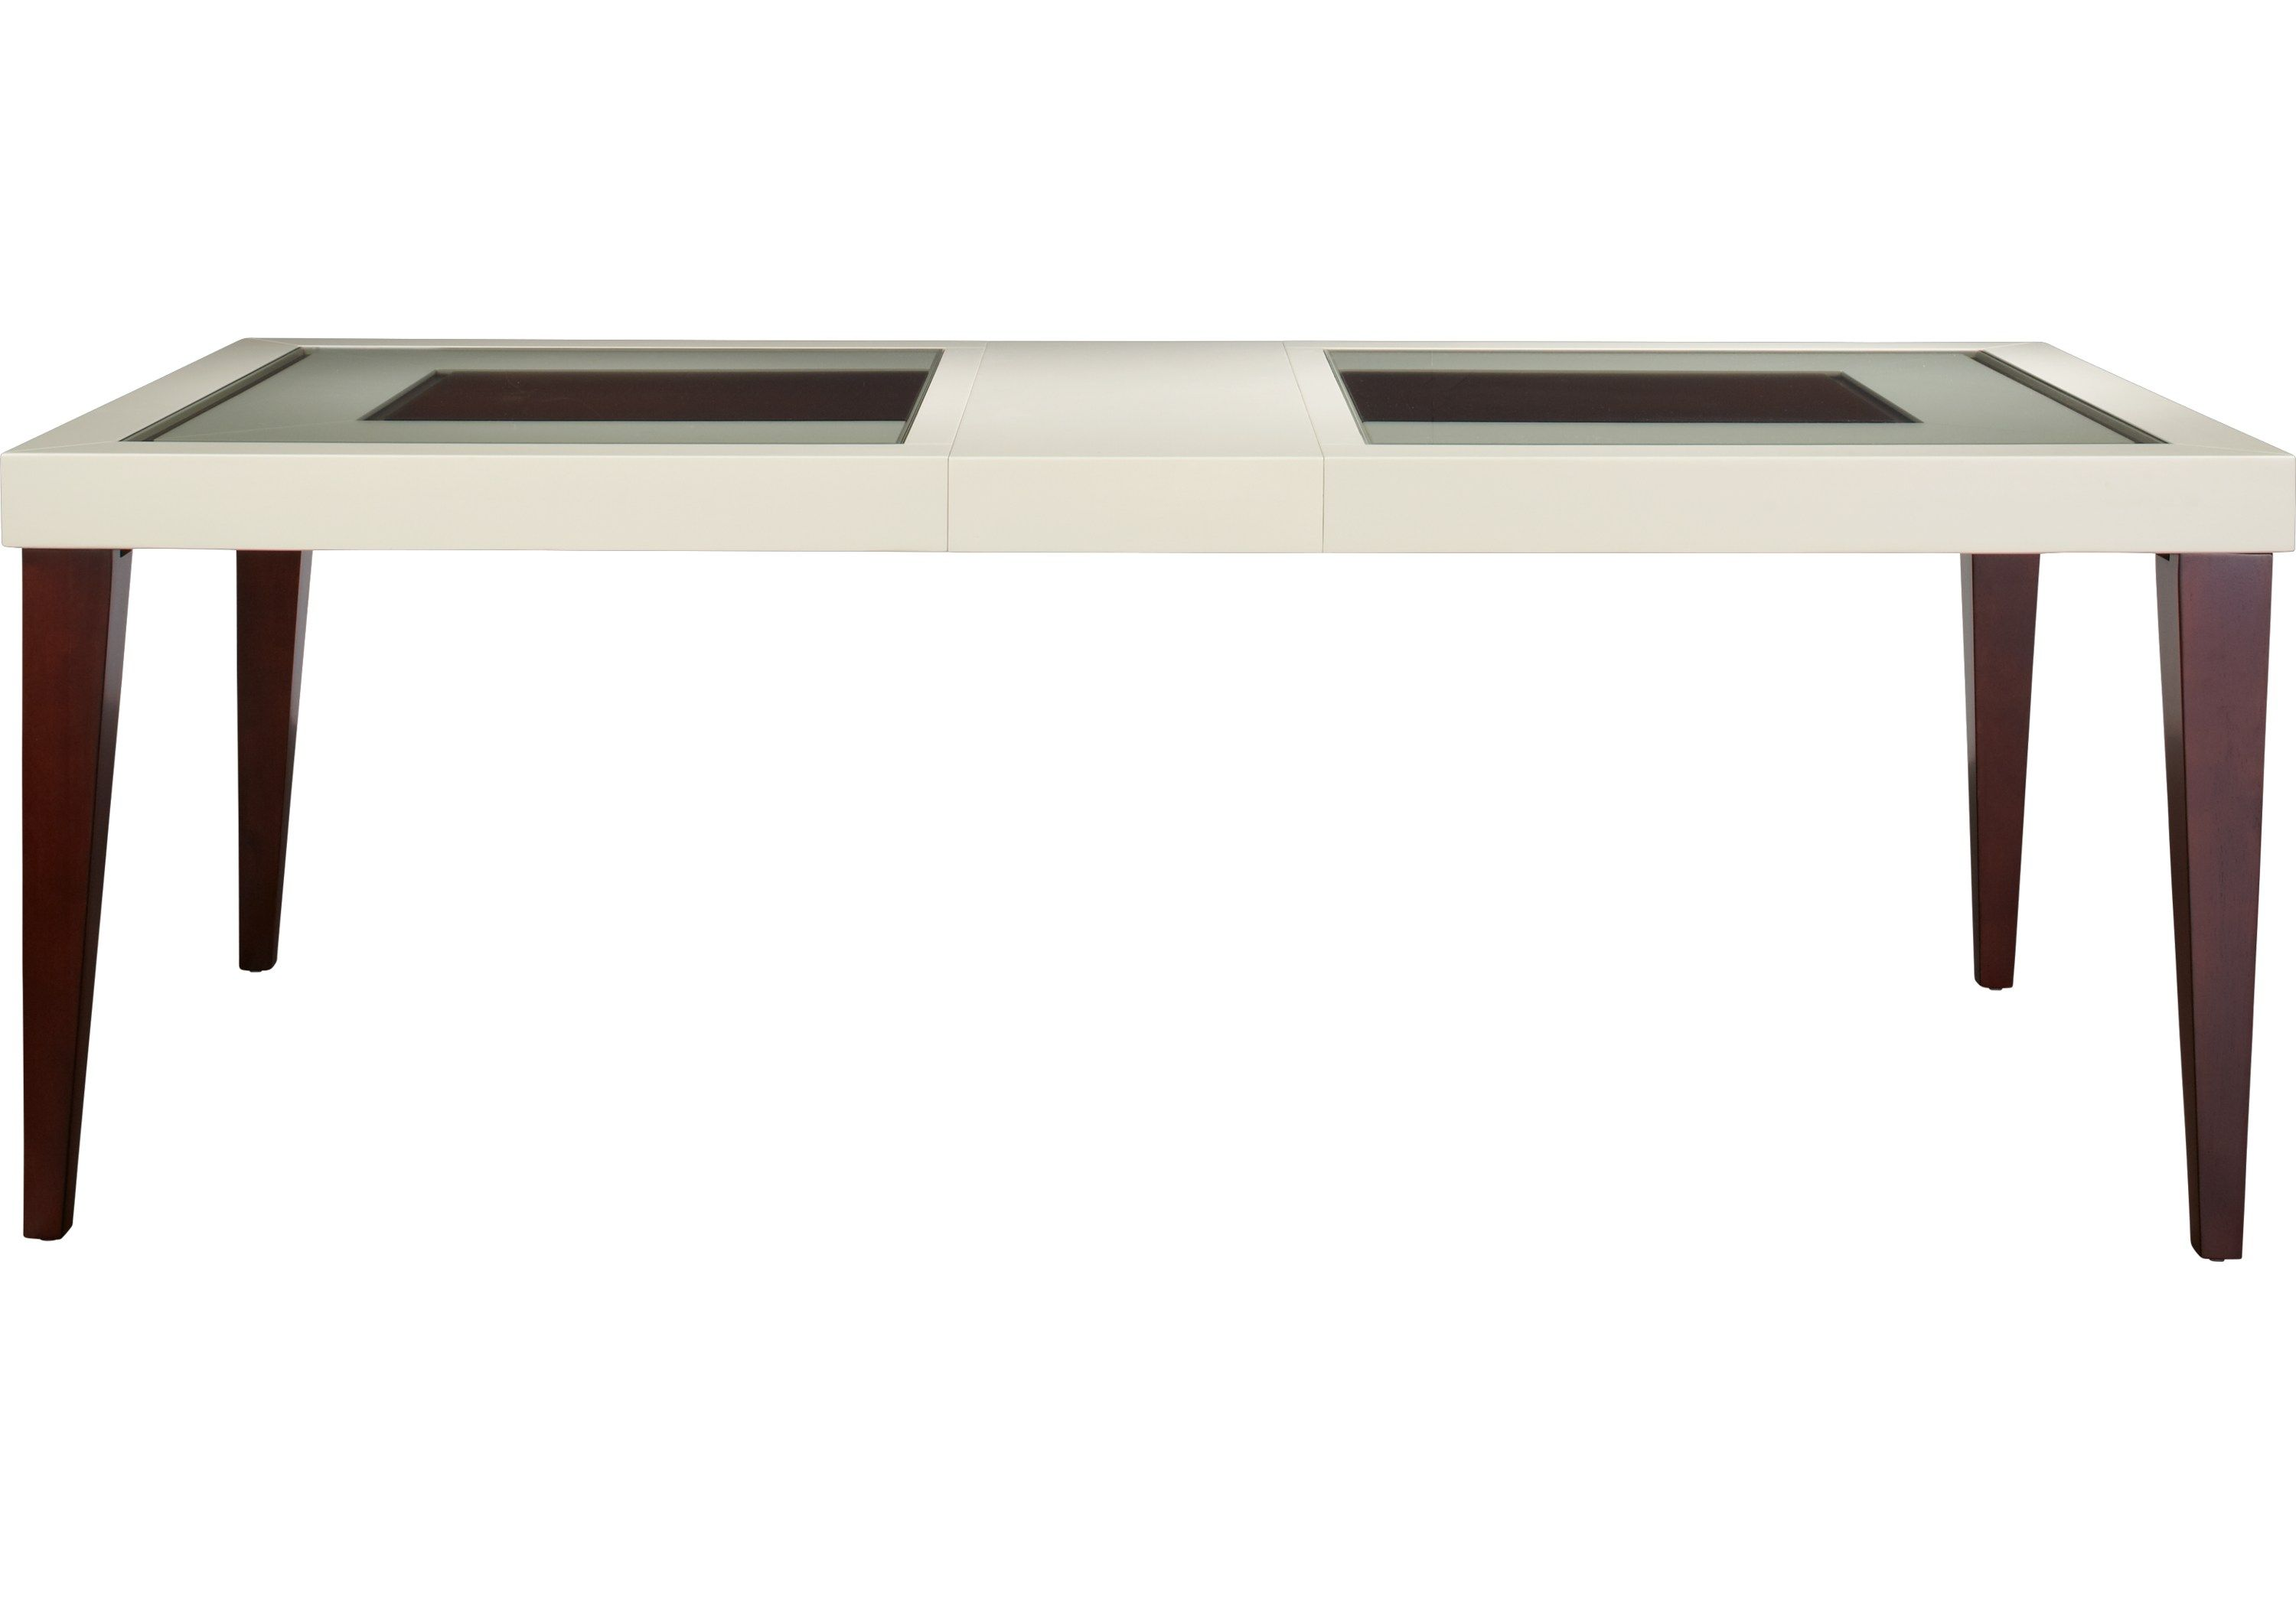 Sofia Vergara Savona Ivory Rectangle Dining Table Rectangle